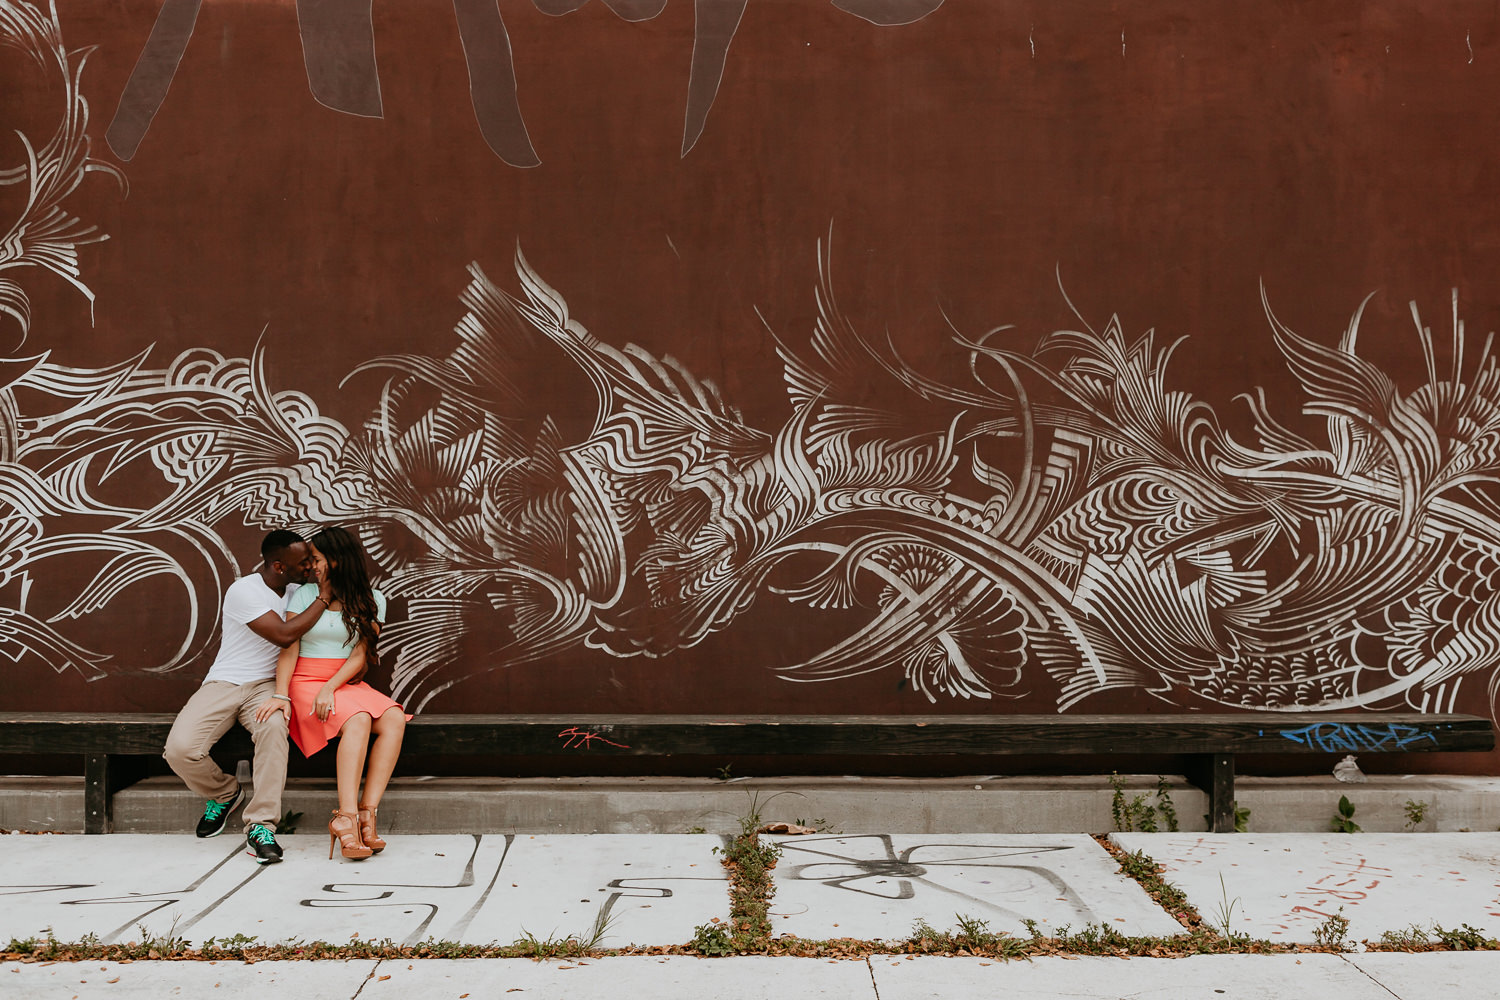 engaged couple sitting on bench with brown and white art wall